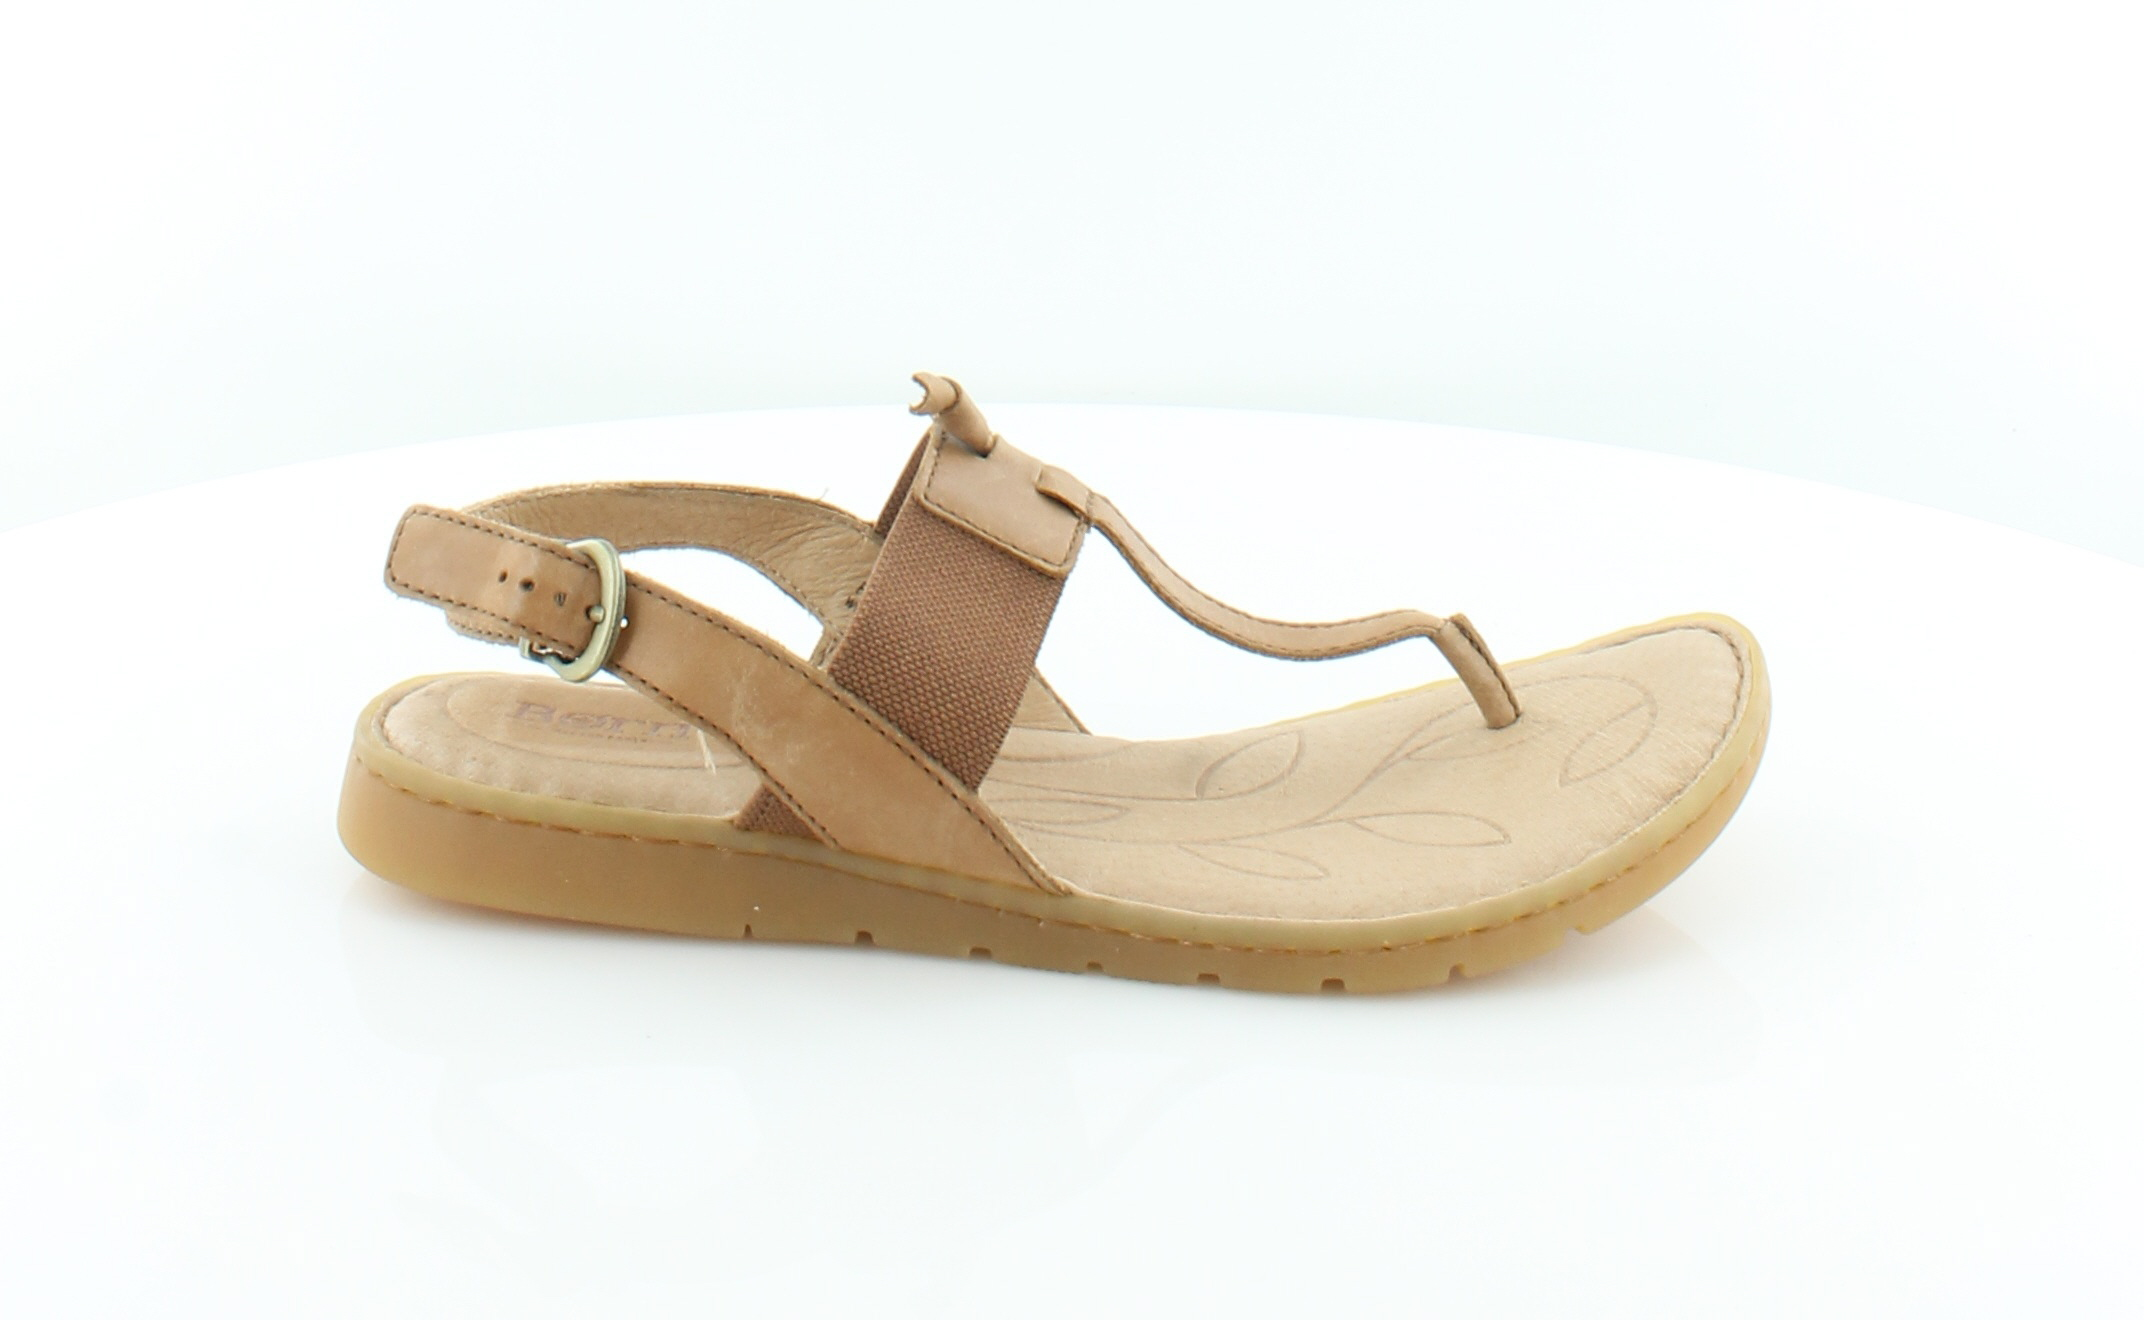 42d9a139ab5 Born Siri Women s Sandals   Flip Flops Brown Size 9 M 1 of 5Only 1  available ...